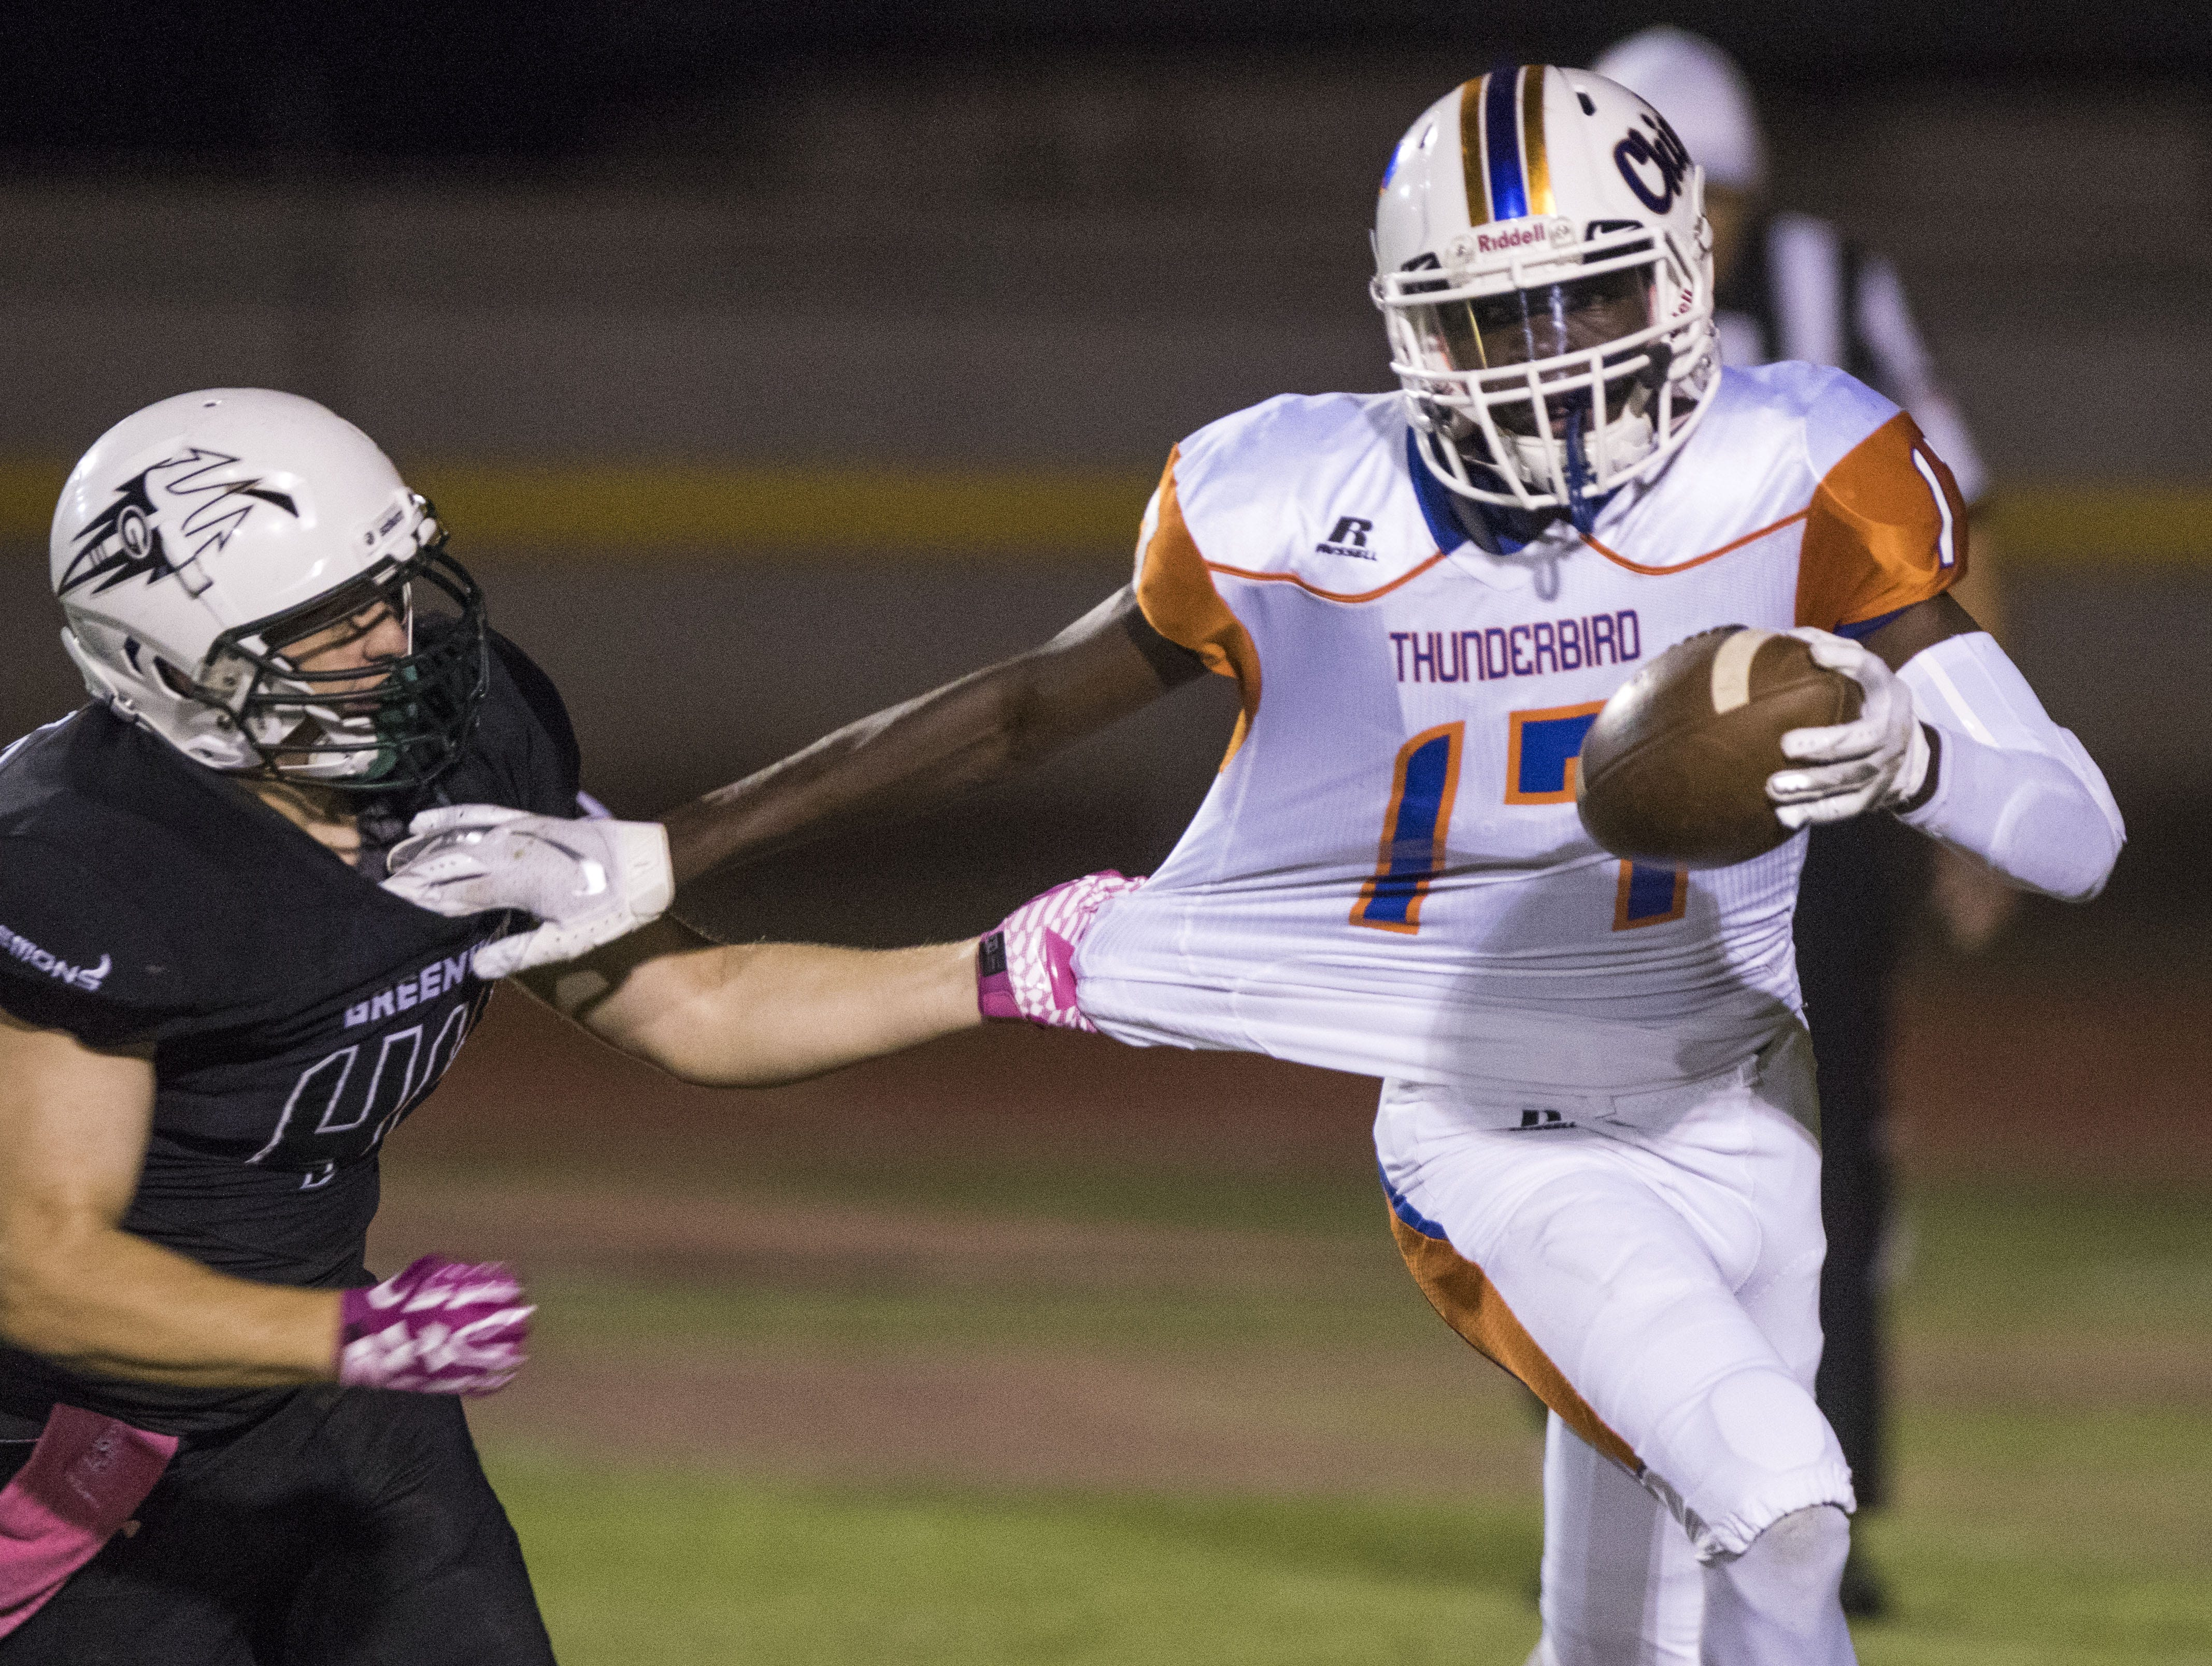 Thunderbird's Joel Goulbourne can't get away from Washington's Mathew Smith in Phoenix Friday, Oct. 5, 2018. #azhsfb